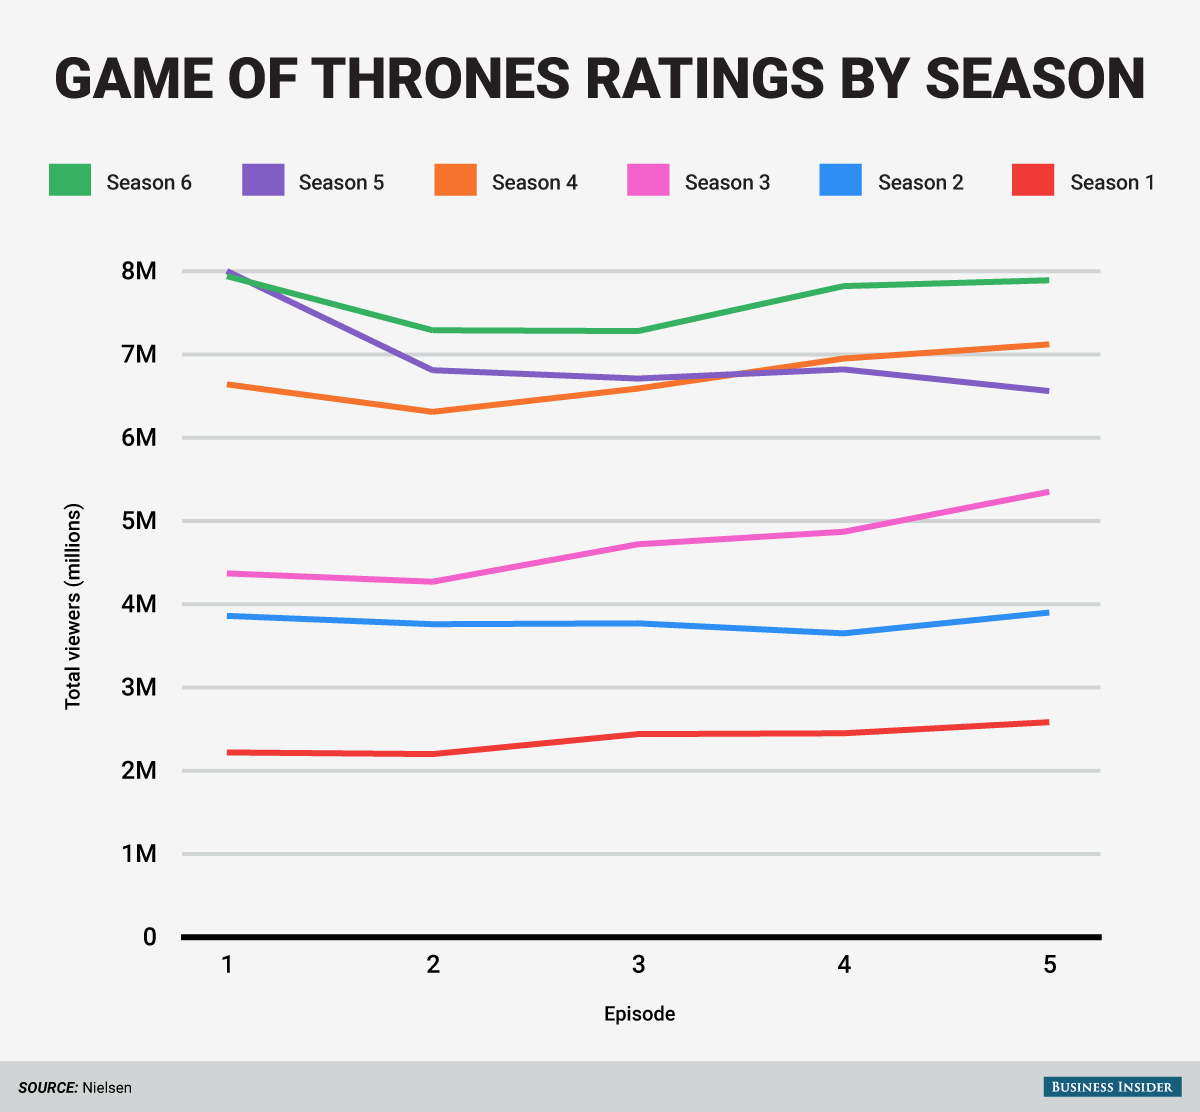 Game of Throne viewership by season chart